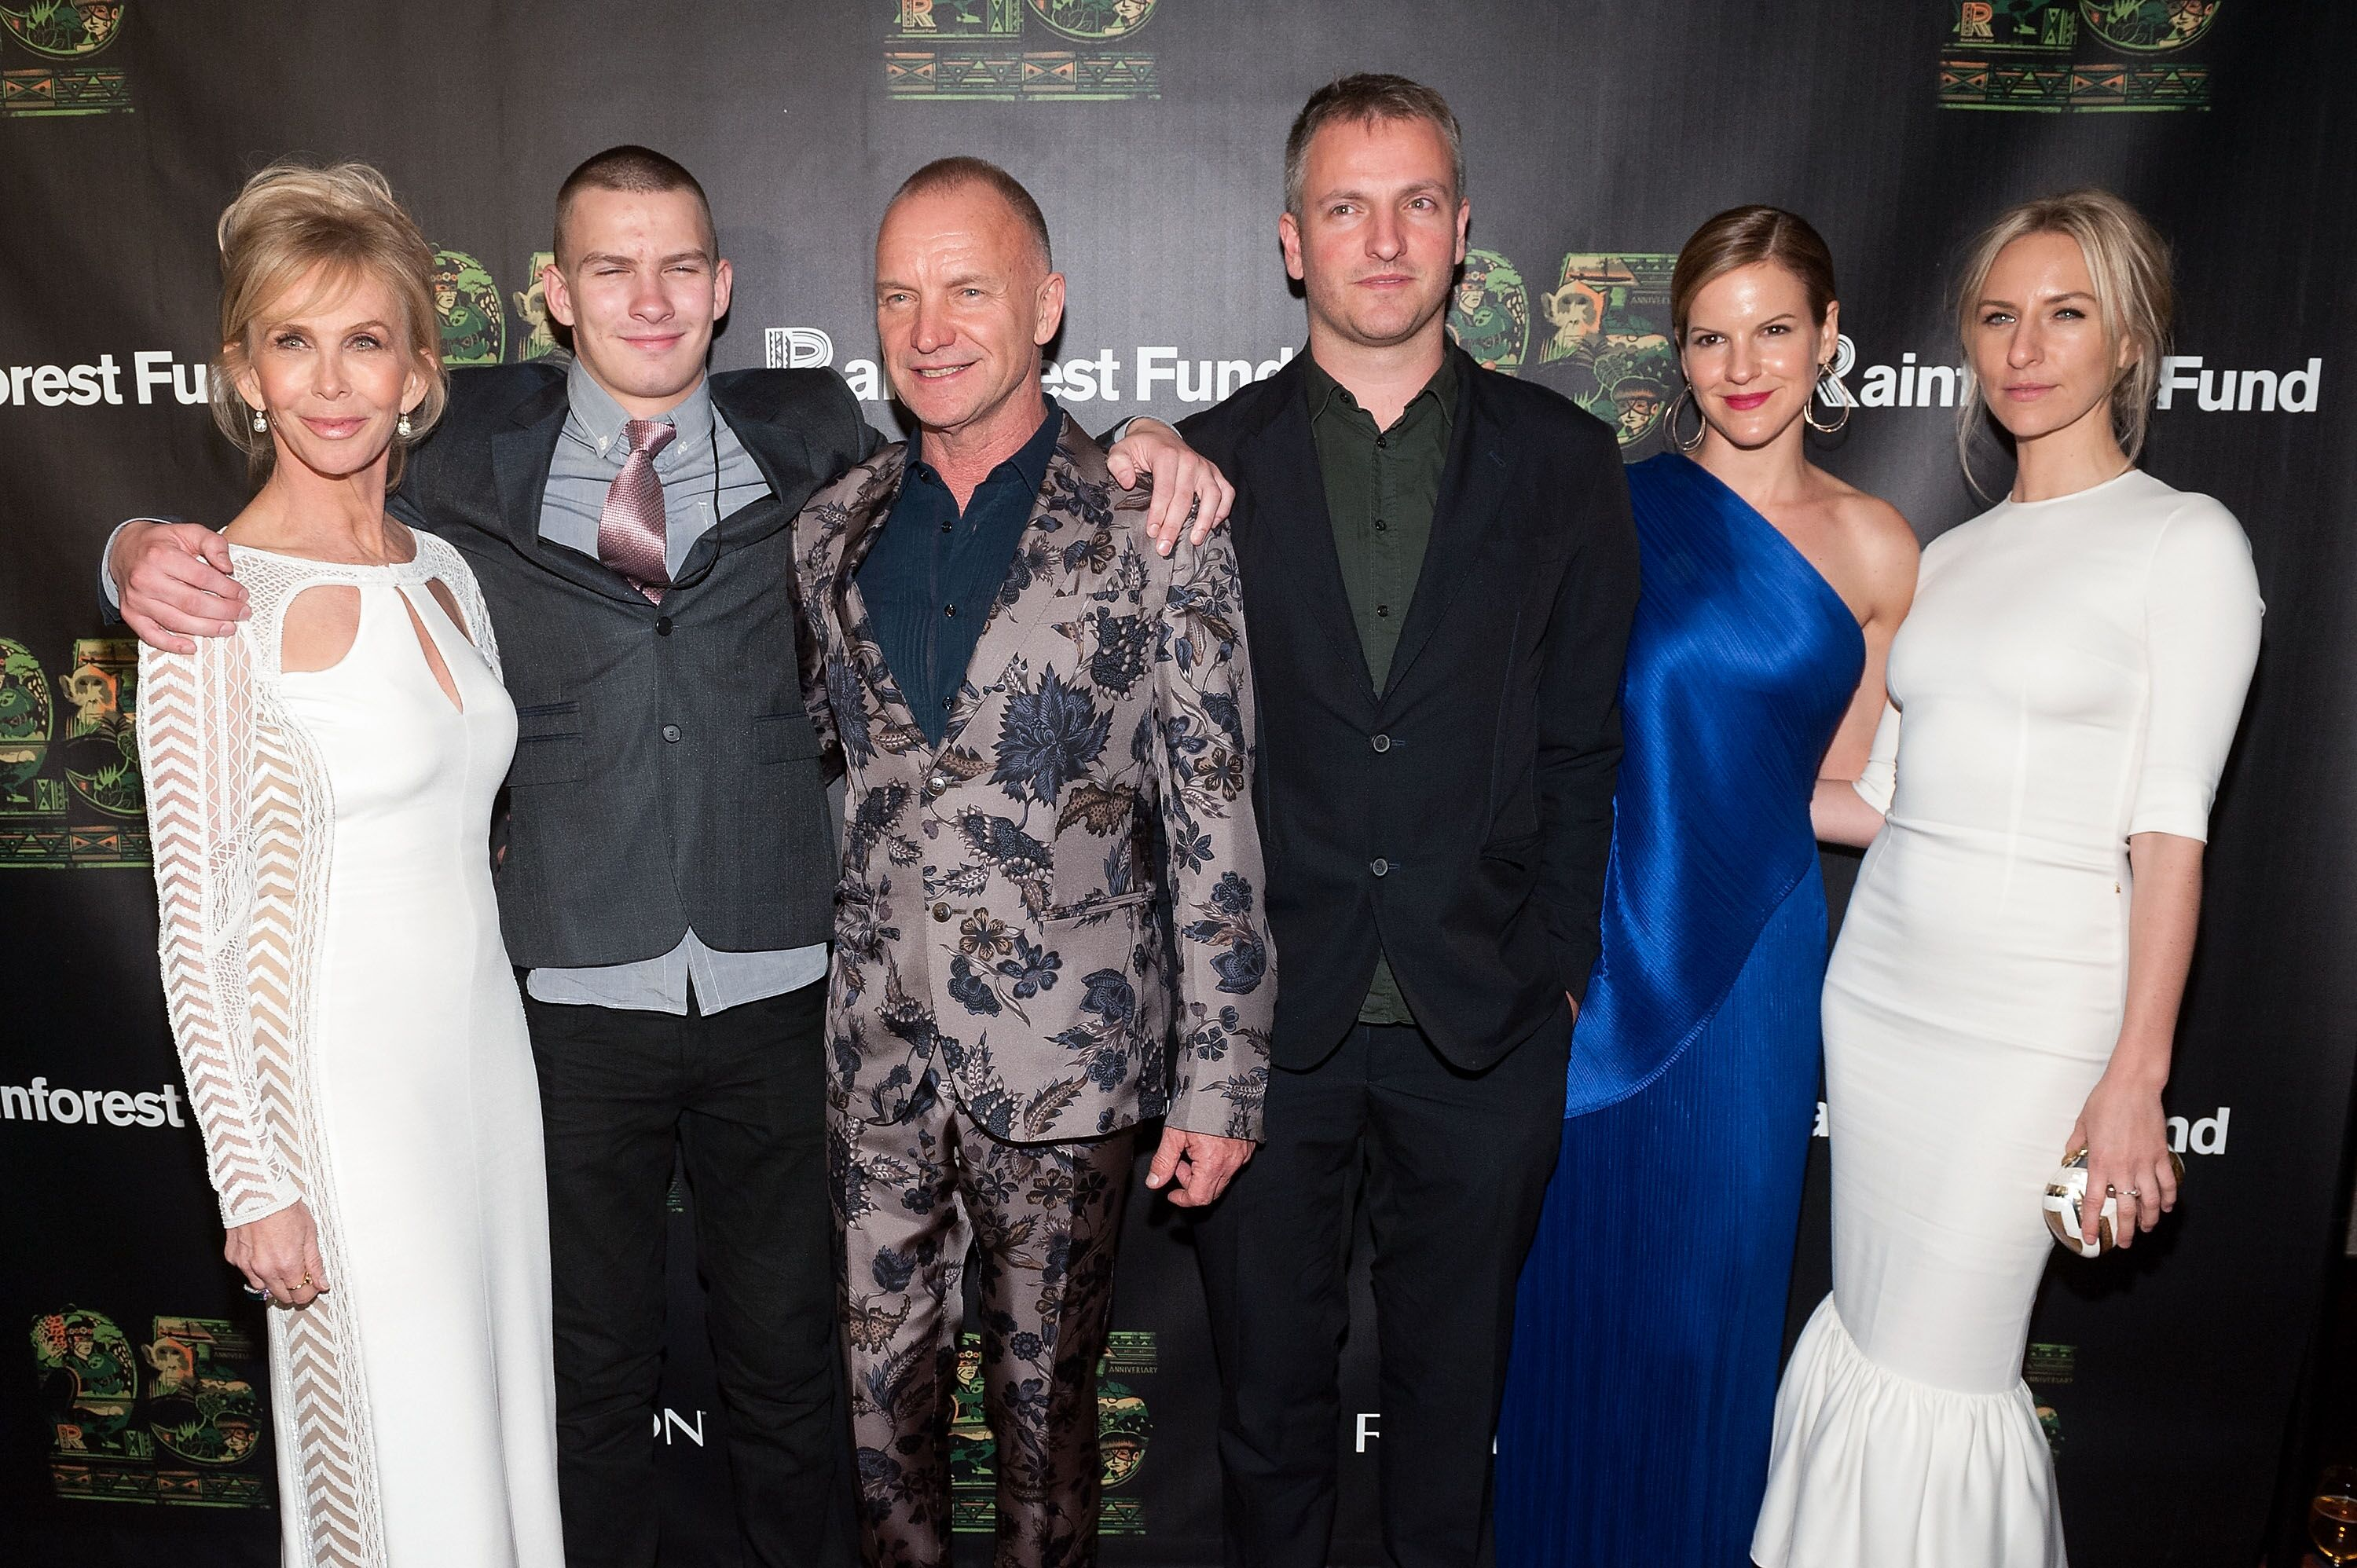 Trudie Styler, Giacomo Sumner, Sting, Joe Sumner, Fuchsia Sumner, and Mickey Sumner attend the after party for the 25th Anniversary Concert for the Rainforest Fund. | Source: Getty Images